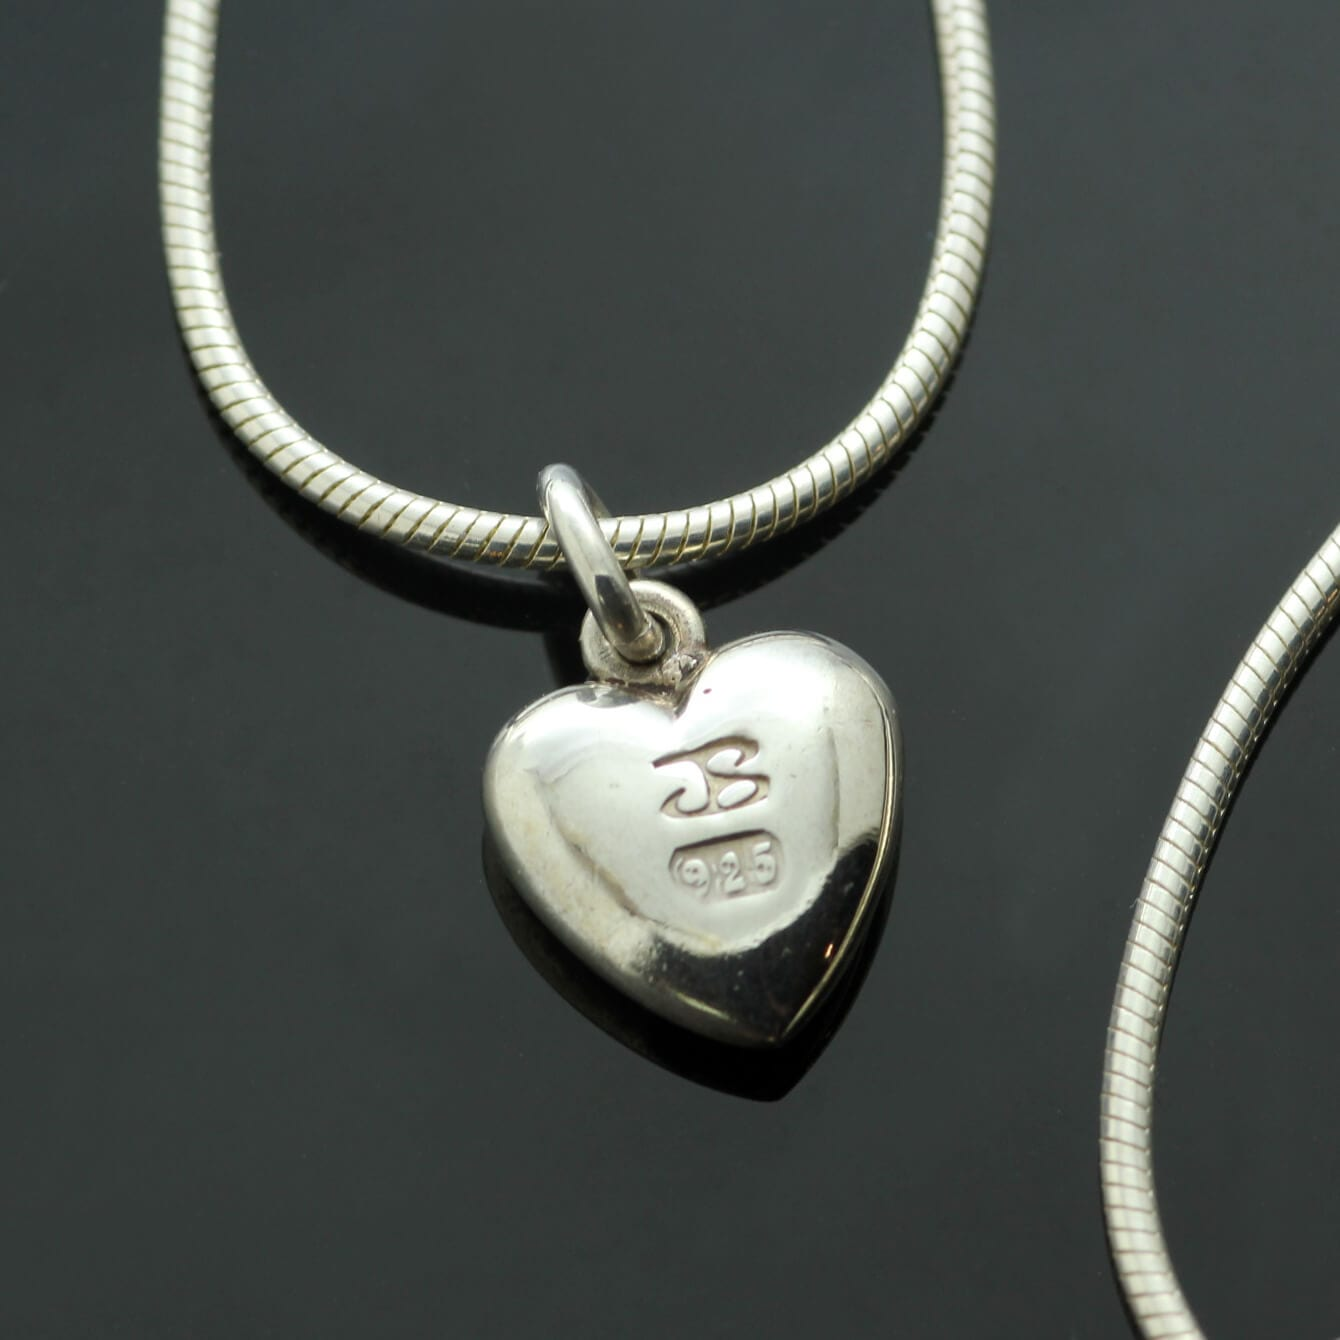 Handcrafted solid Sterling Silver heart charm on solid Silver Snake chain